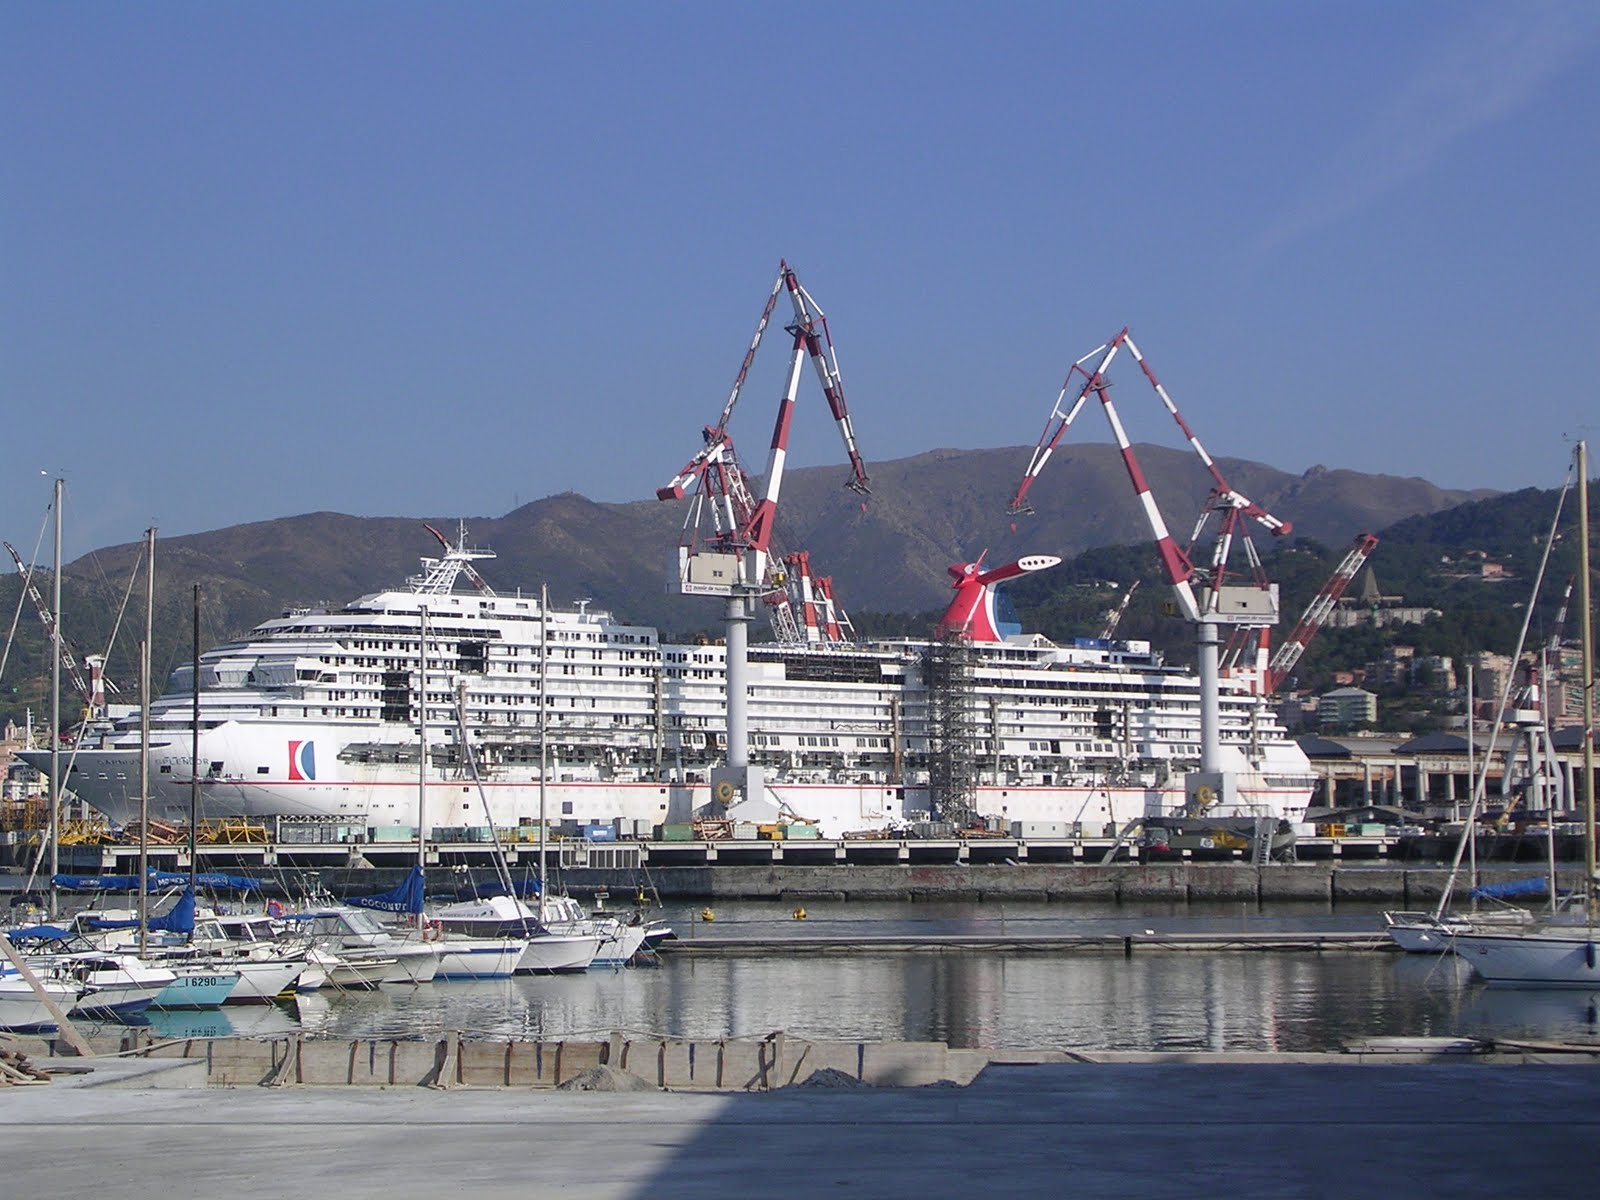 Splendid Holiday Comes To An Abrupt End The Monitor - Carnival cruise ships wiki